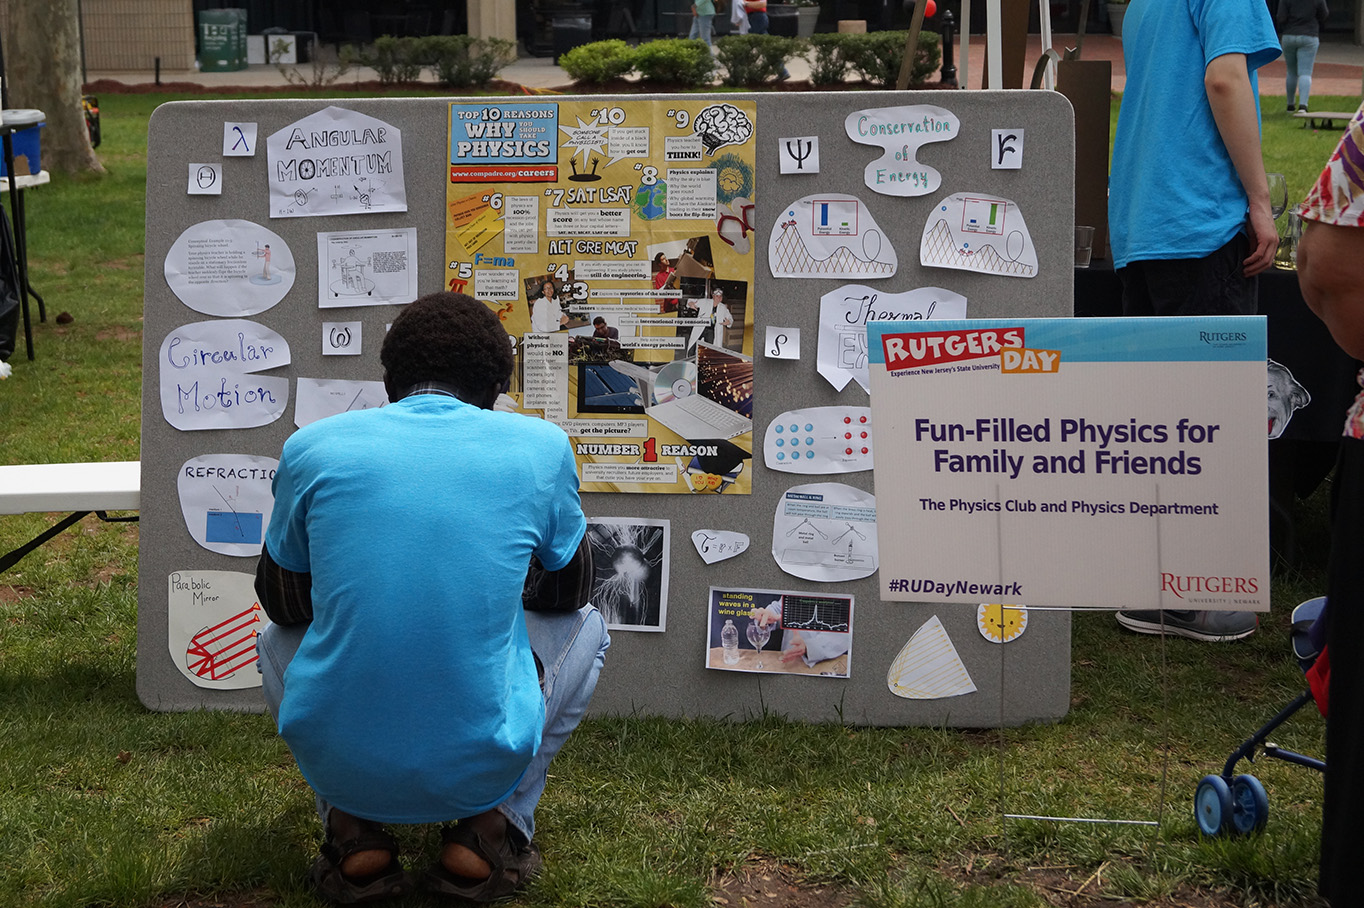 A visitor looks at a board explaining physics concepts.